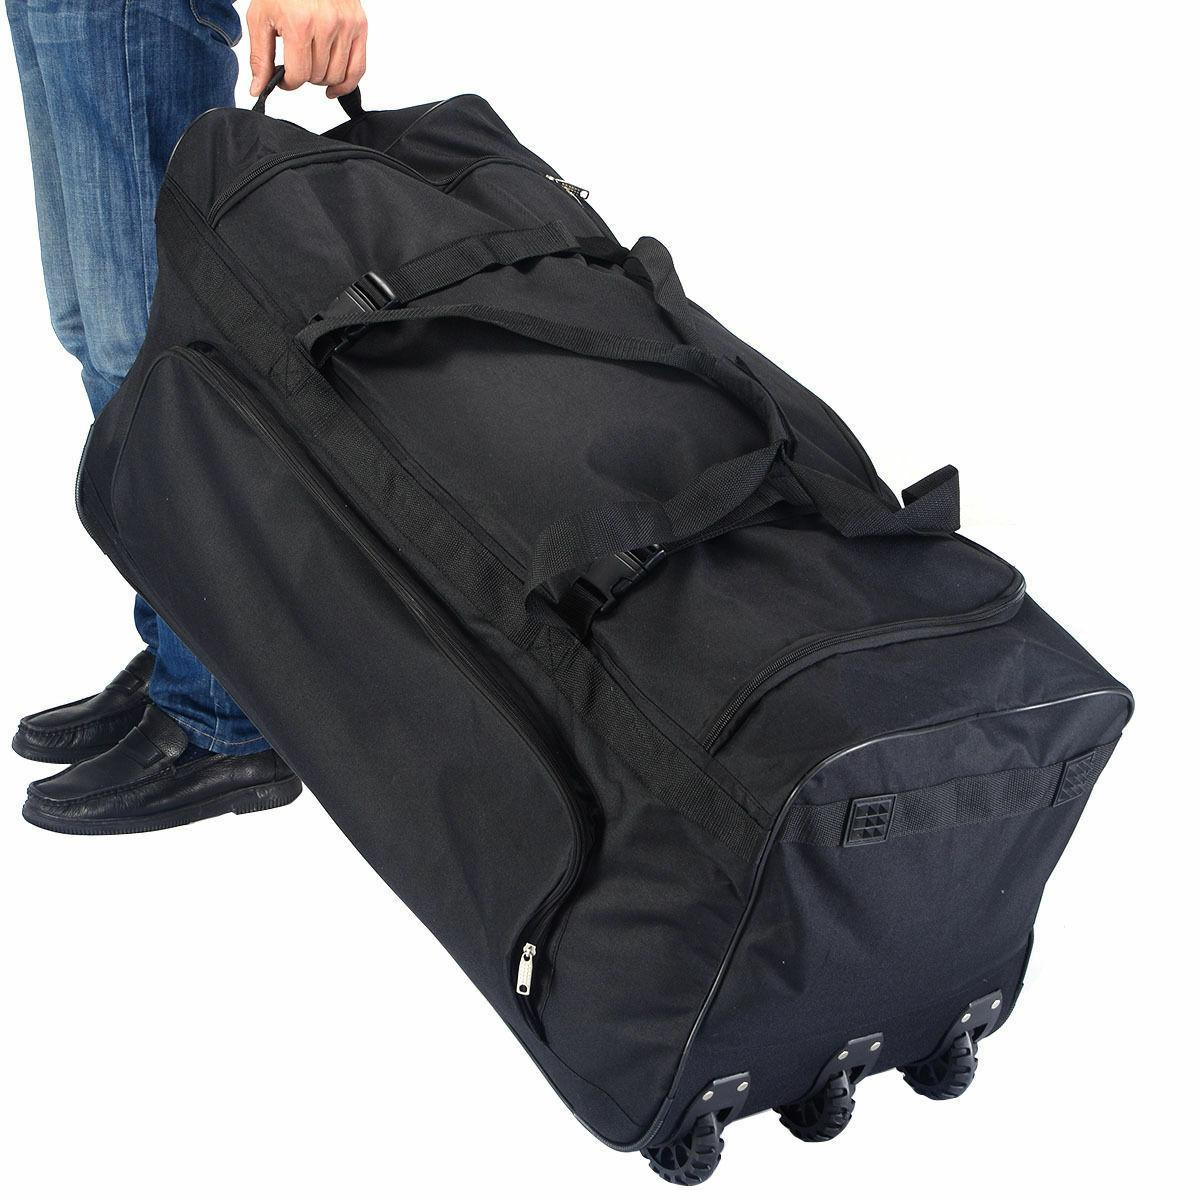 Large Black Rolling Wheels Duffle Tote Gym Bag Luggage Sport